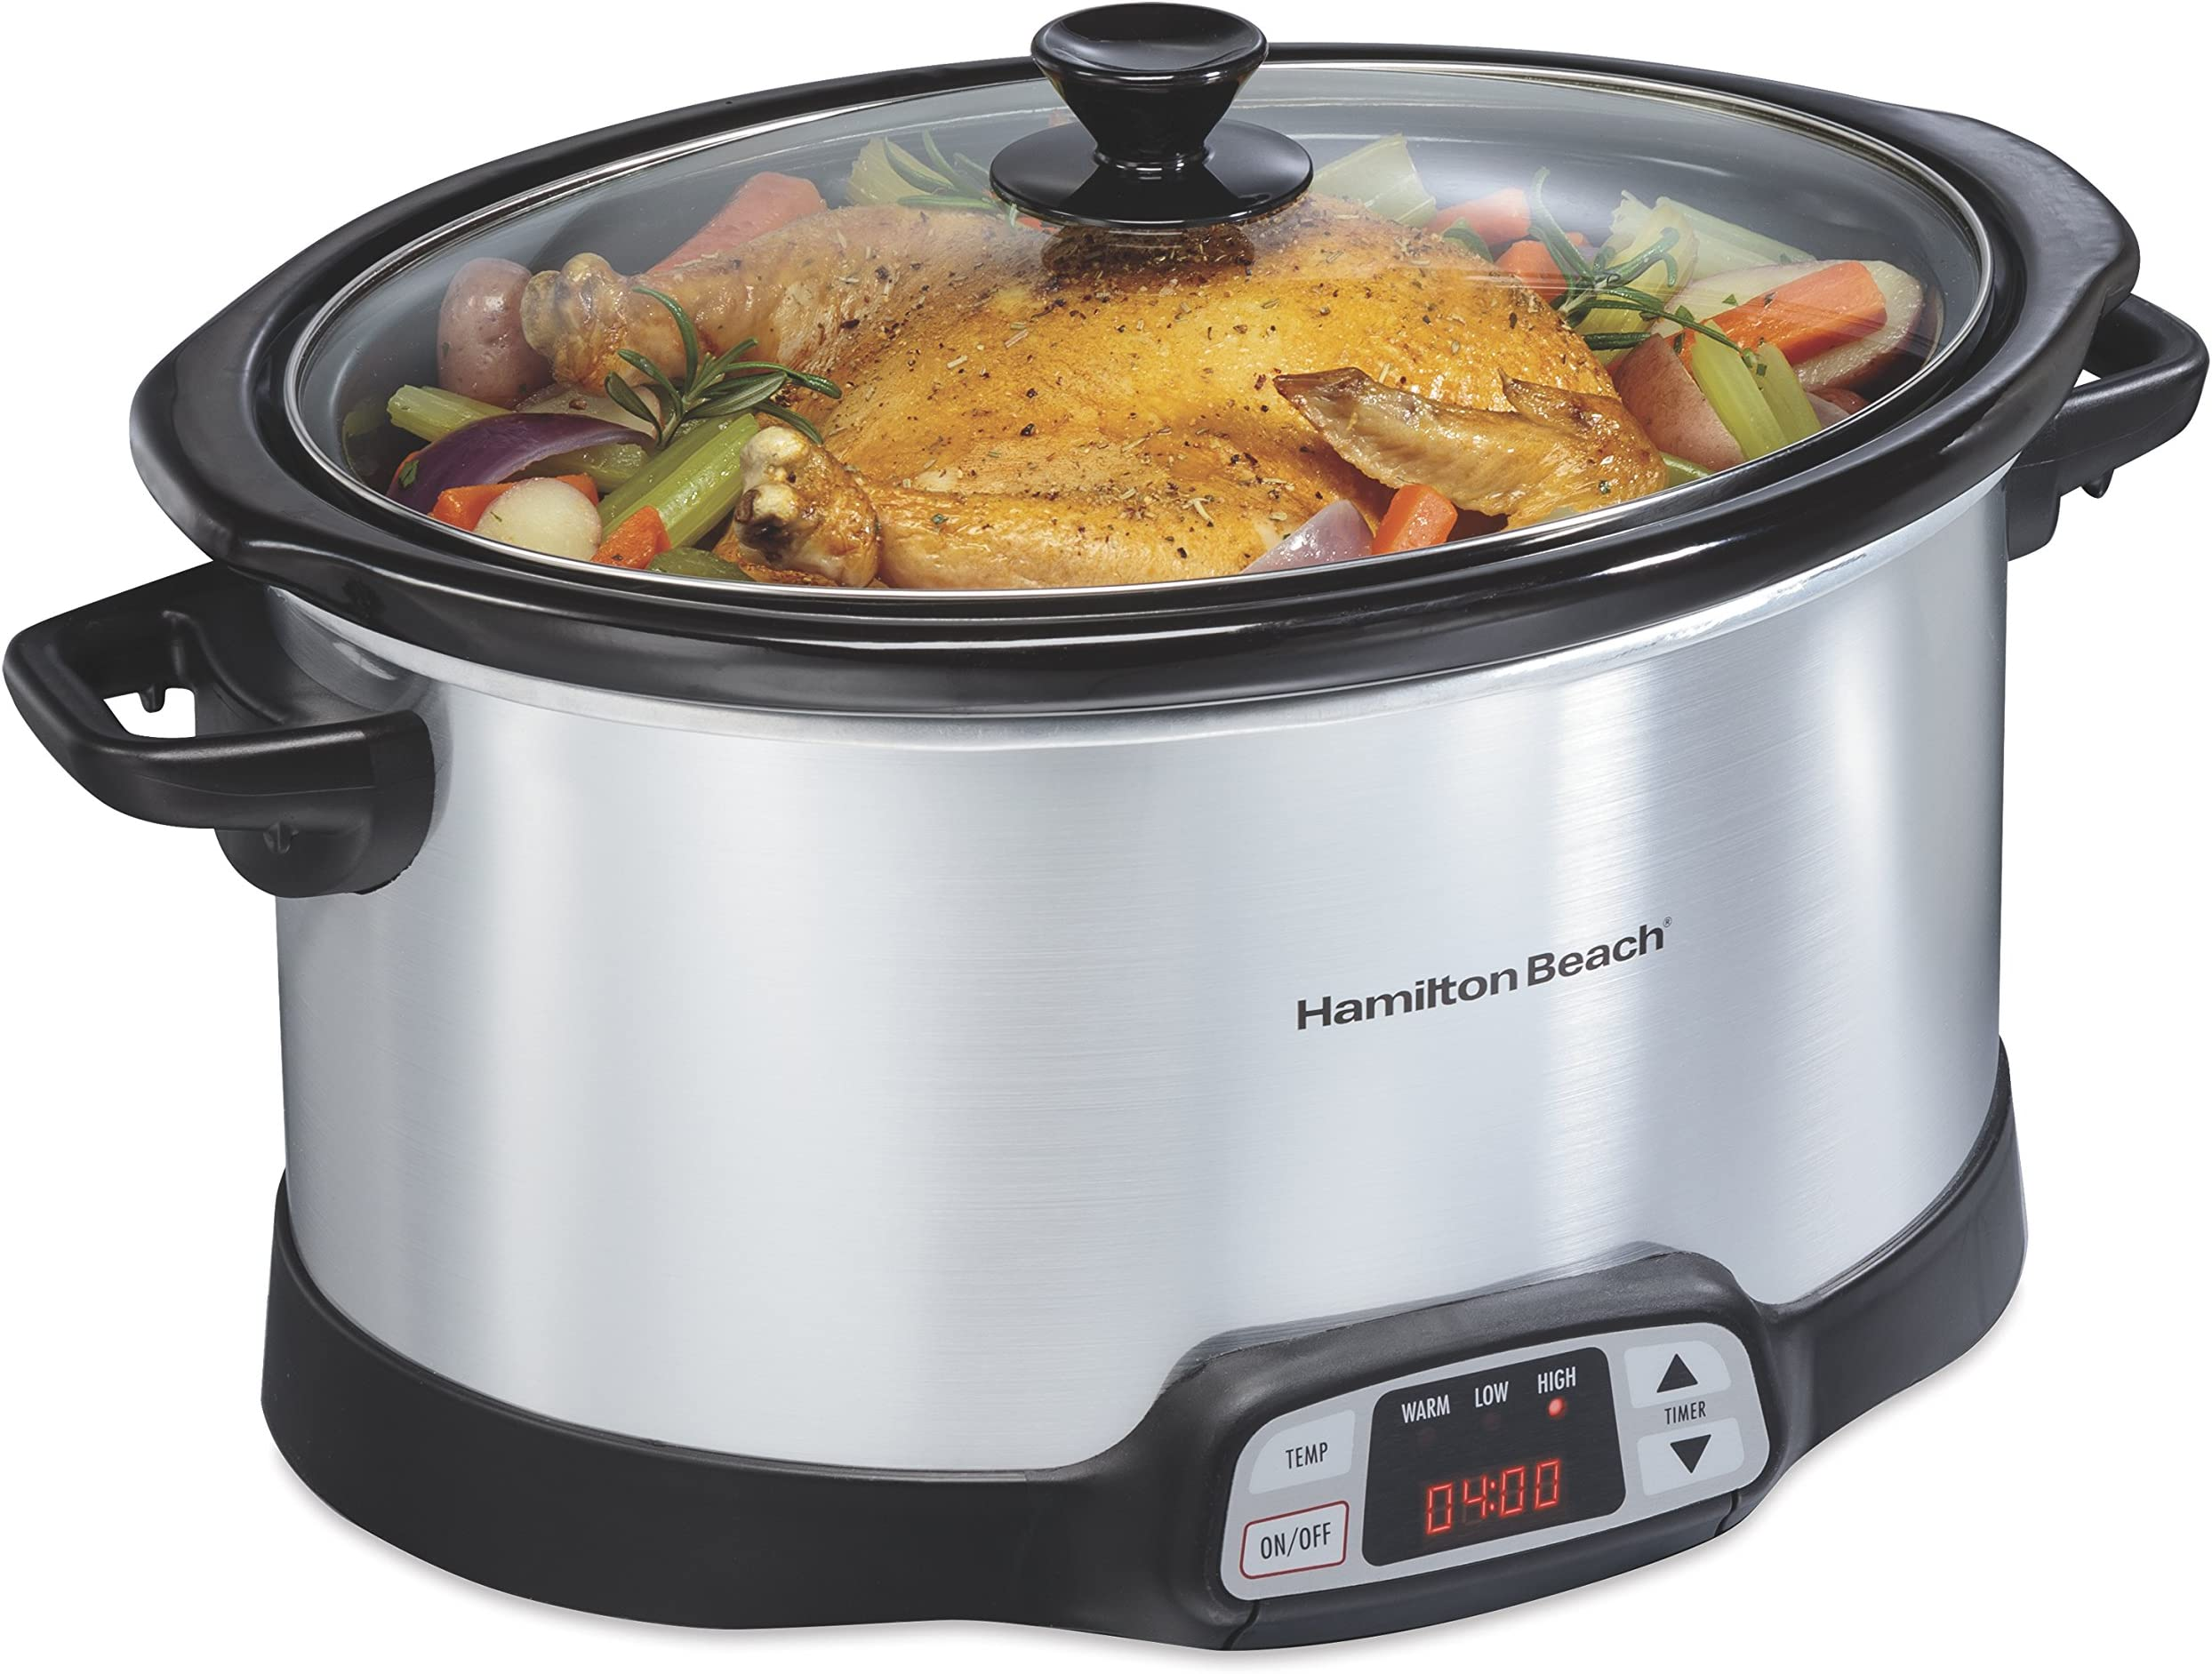 Hamilton Beach 33480 Programmable Slow Cooker with Three Temperature Settings, 8-Quart, Silver